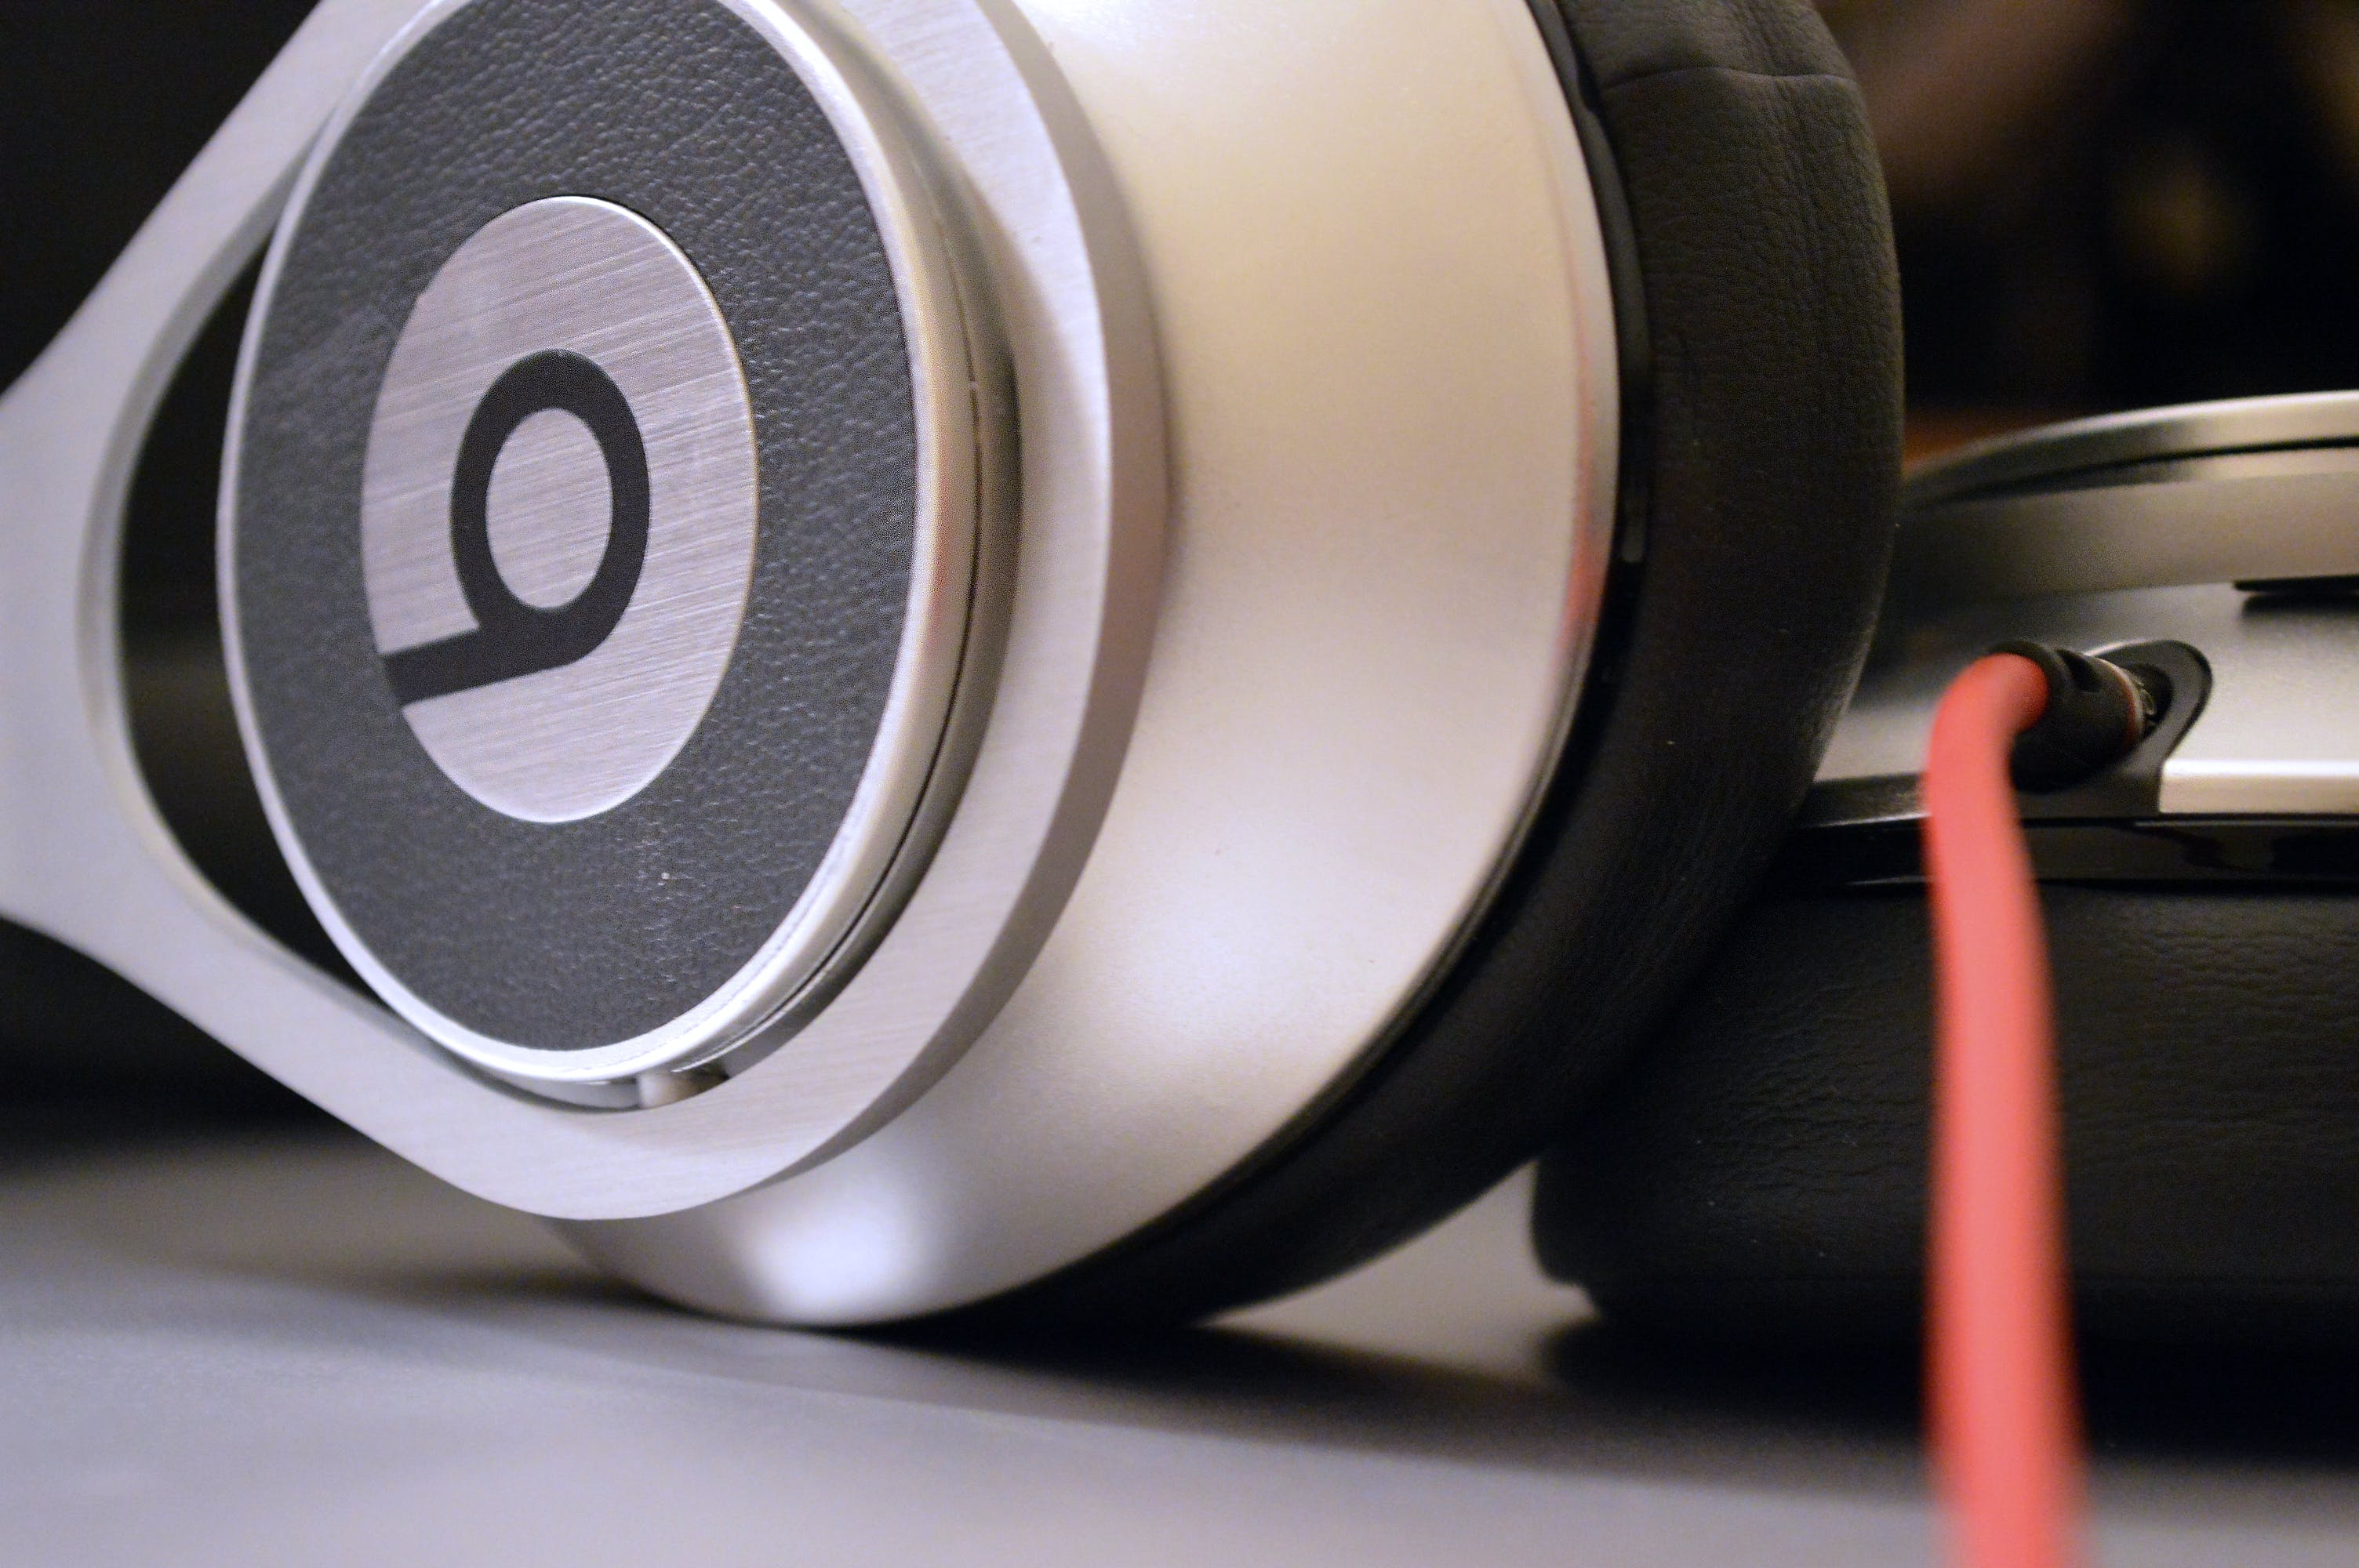 Free stock photo of Beats by Dr Dre, Executive Beats, headphones, silver